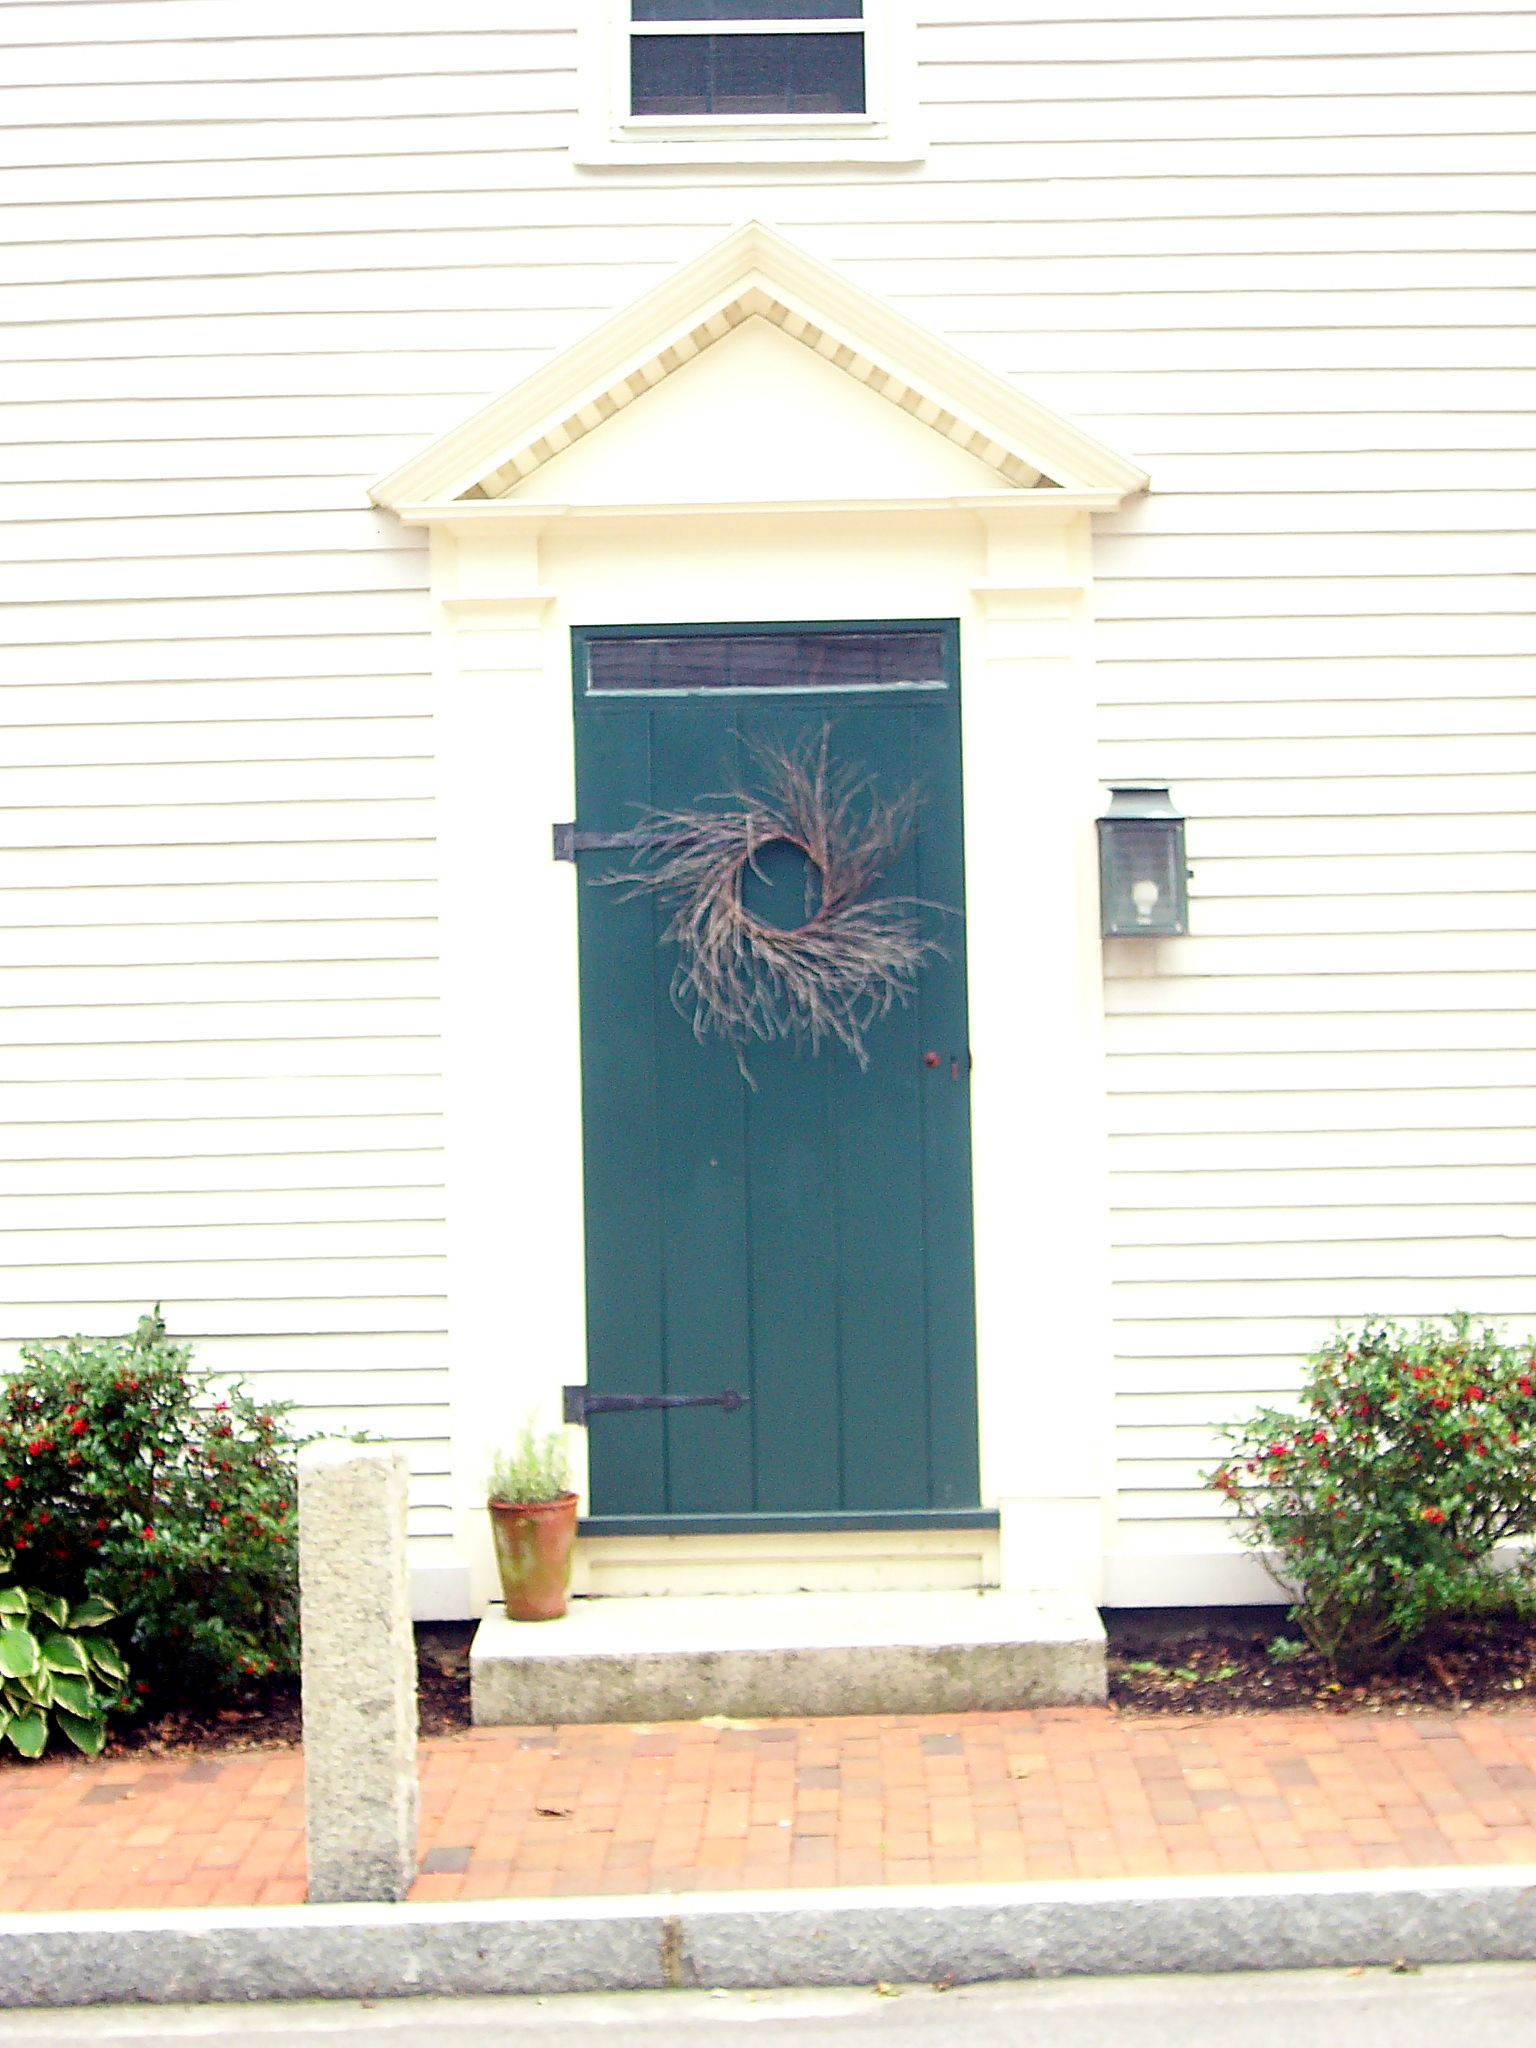 Portsmouth Doors Slab Doors Puertas Gate  sc 1 st  Pinterest & Pin by Michael Kelso dba Maine Carpenter on Doors of Portsmouth NH ...